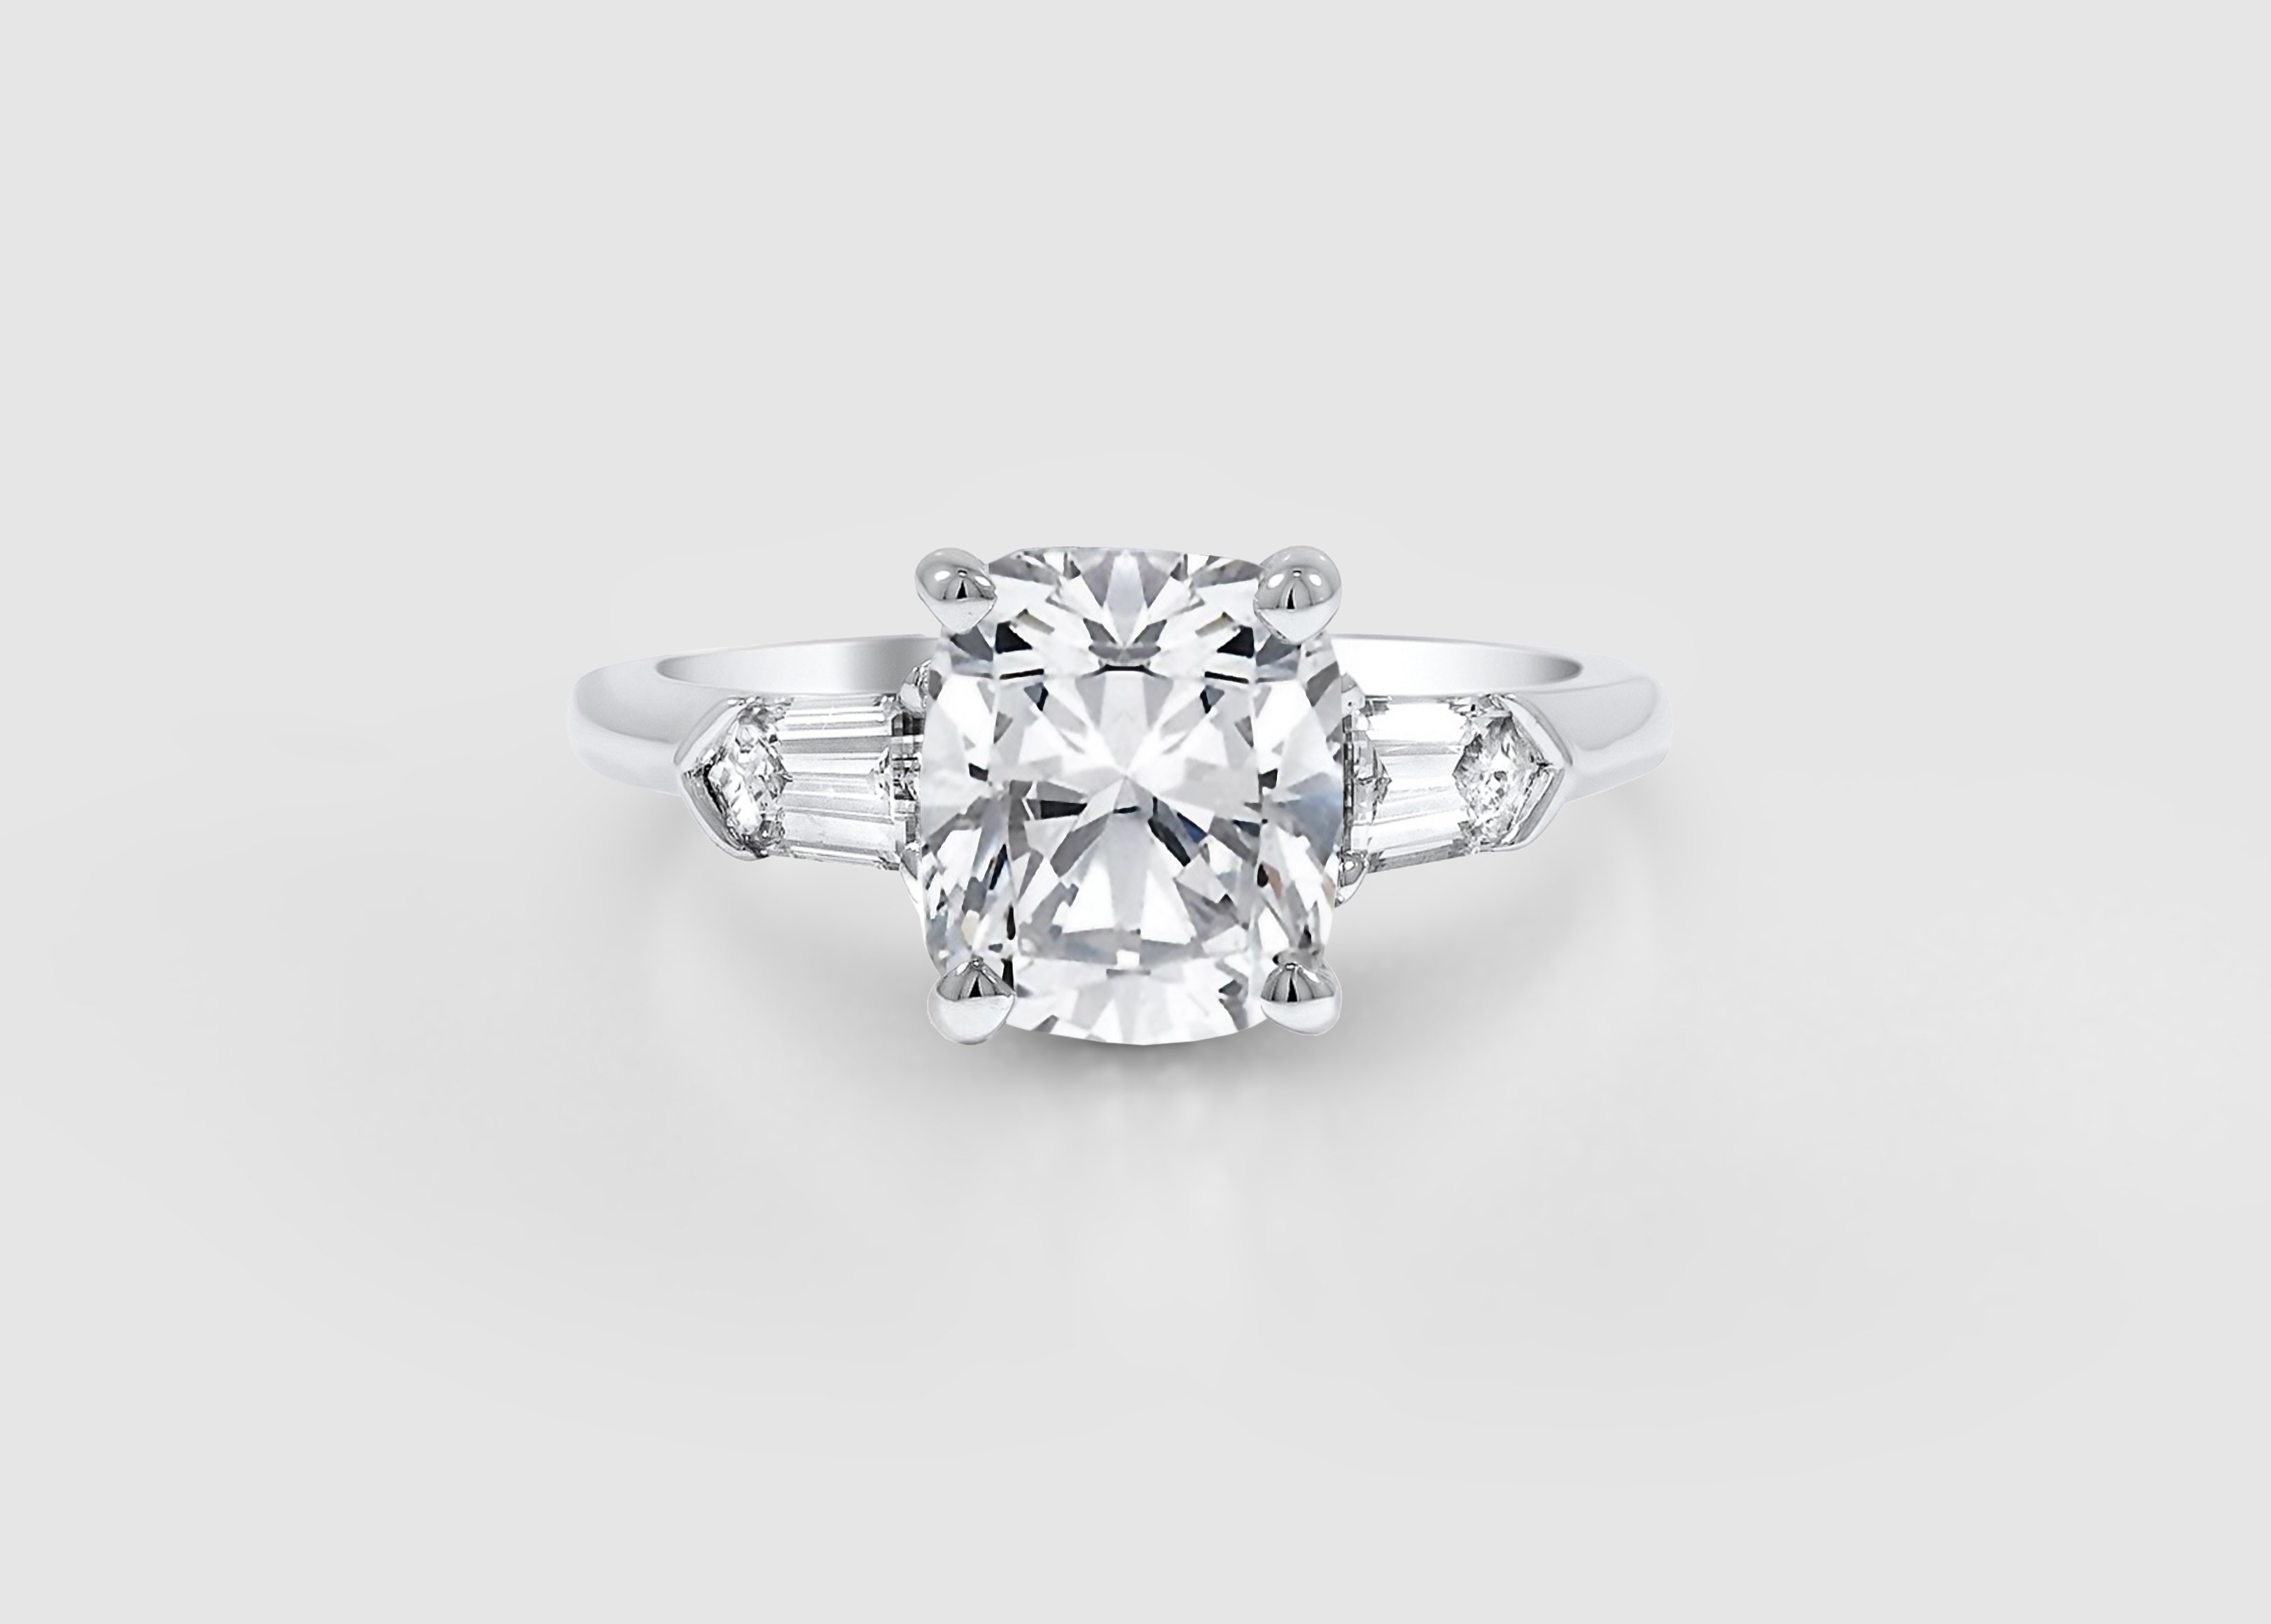 Engagement Ring Trends Of The Past, Present, And Future | Brilliant Intended For 2018 Vintage Style Diamond Anniversary Rings (Gallery 13 of 15)